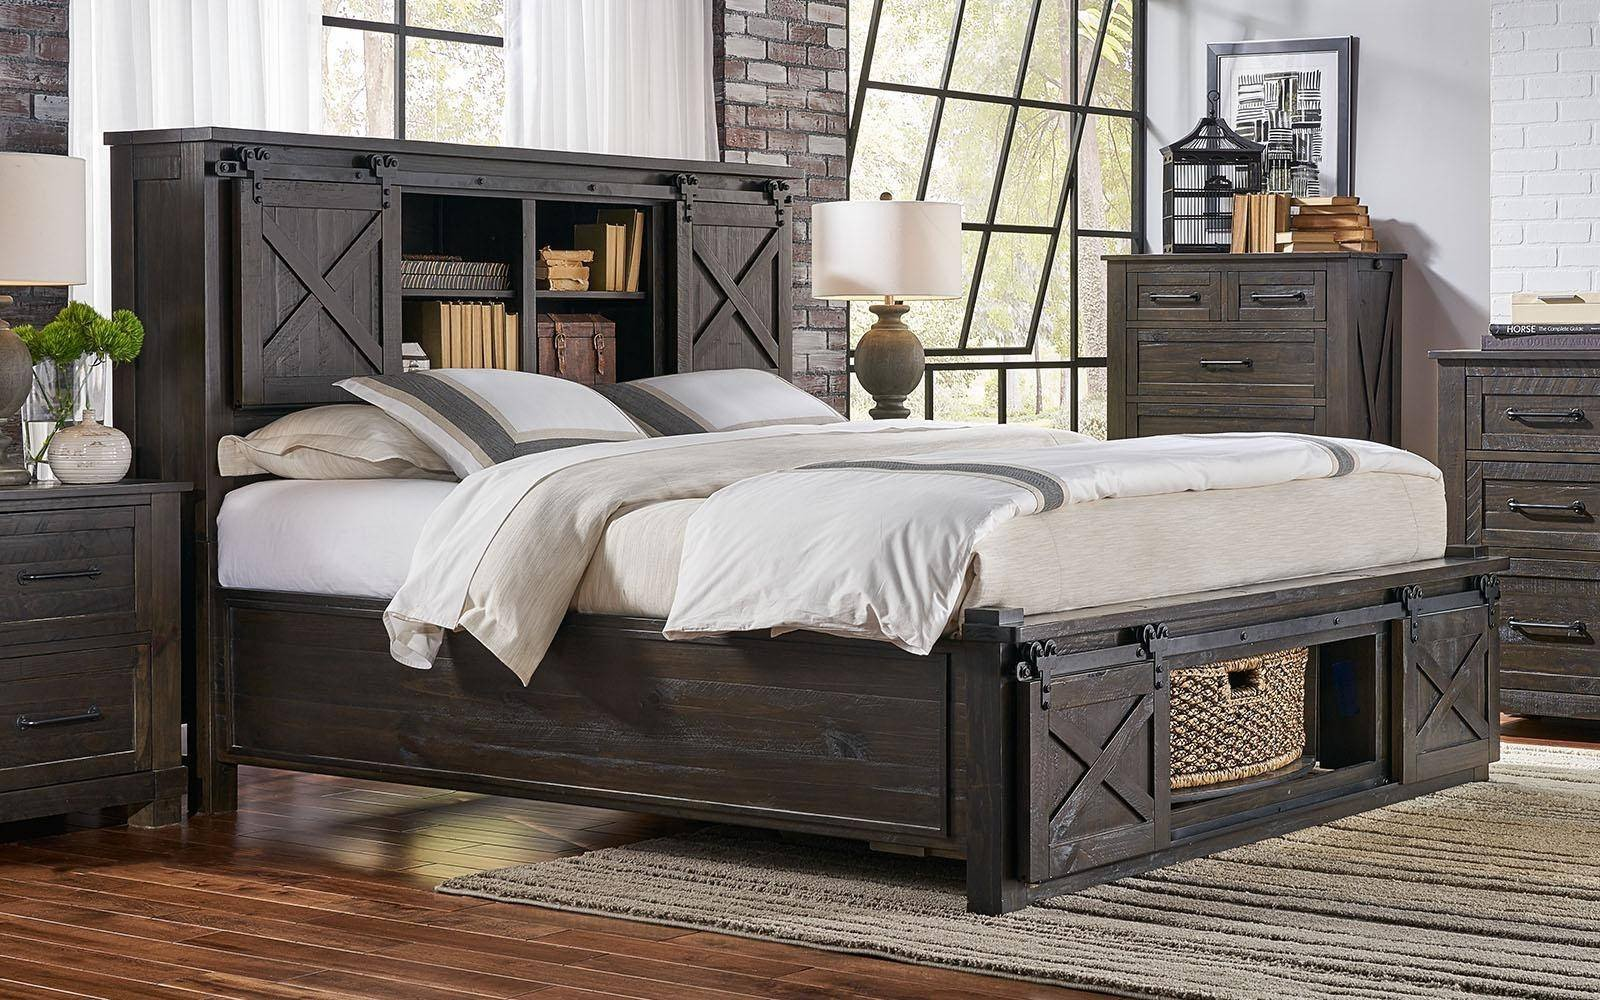 Distressed White Bedroom Furniture Unique Rustic Queen Rotating Storage Bedroom Set 5pcs Suvcl5032 A